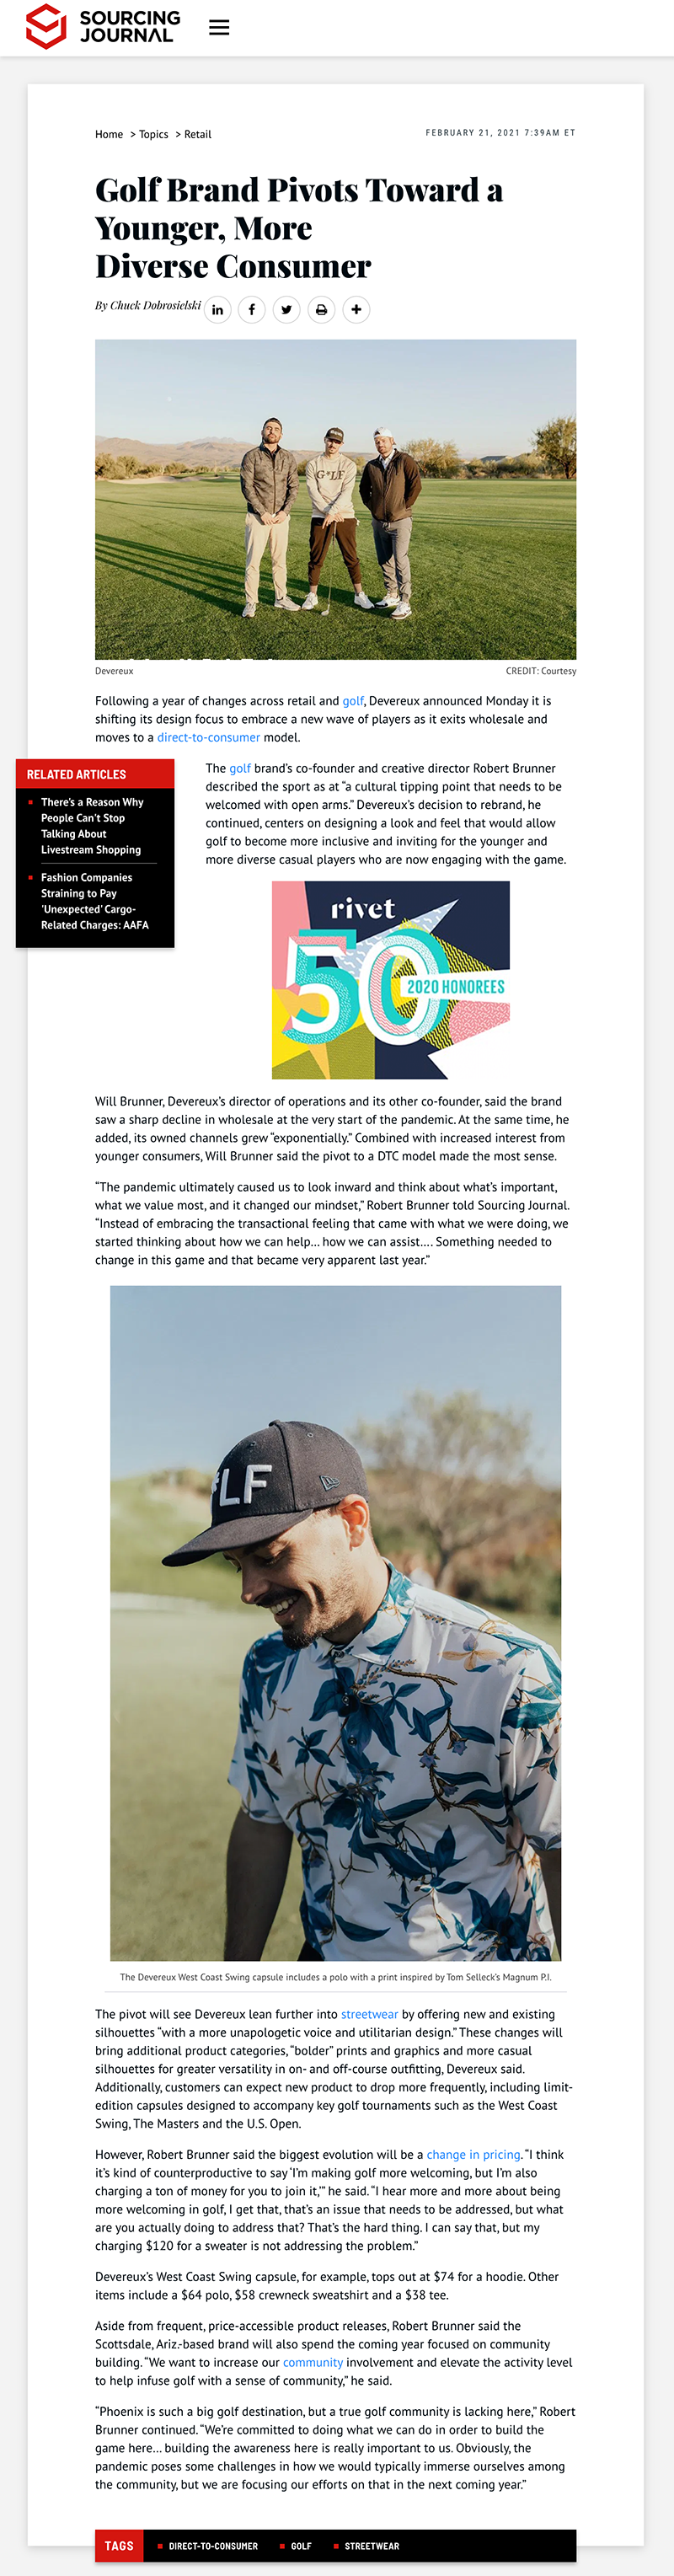 Sourcing Journal's Feature on Devereux Golf brand